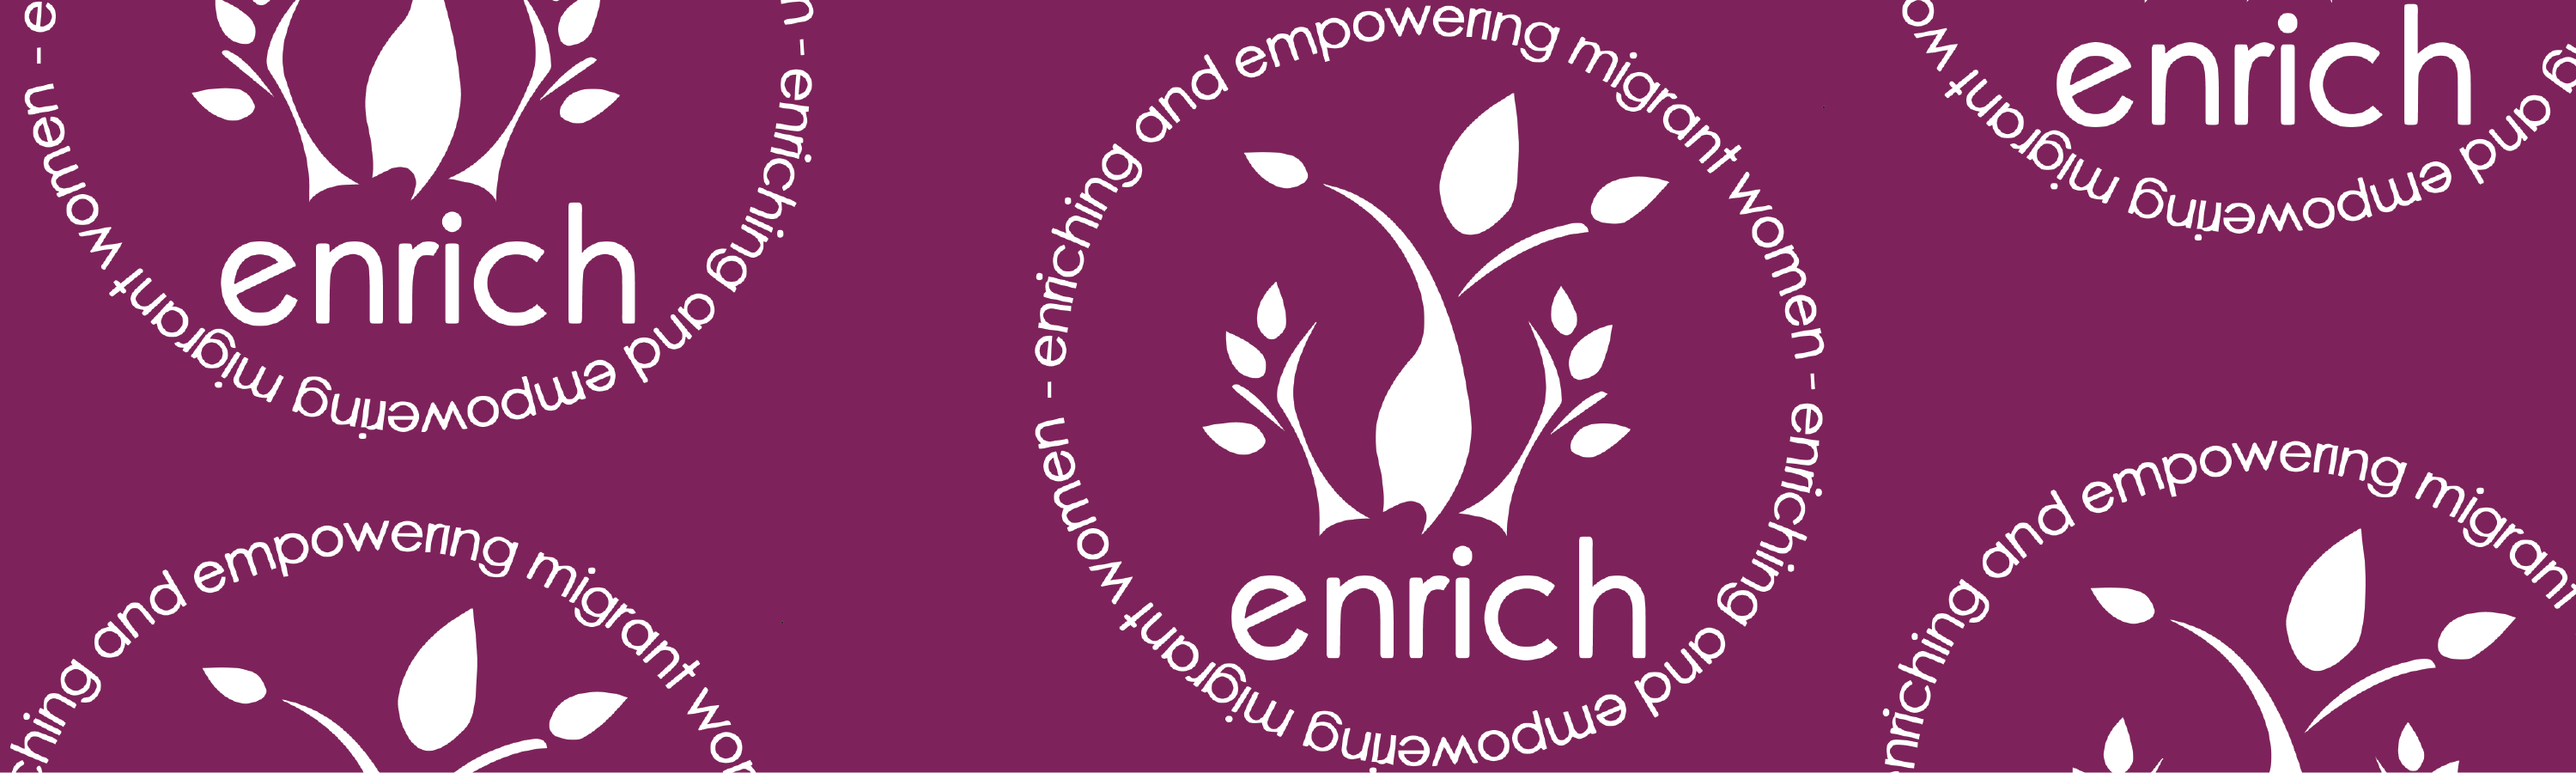 Enrich white logo on purple background